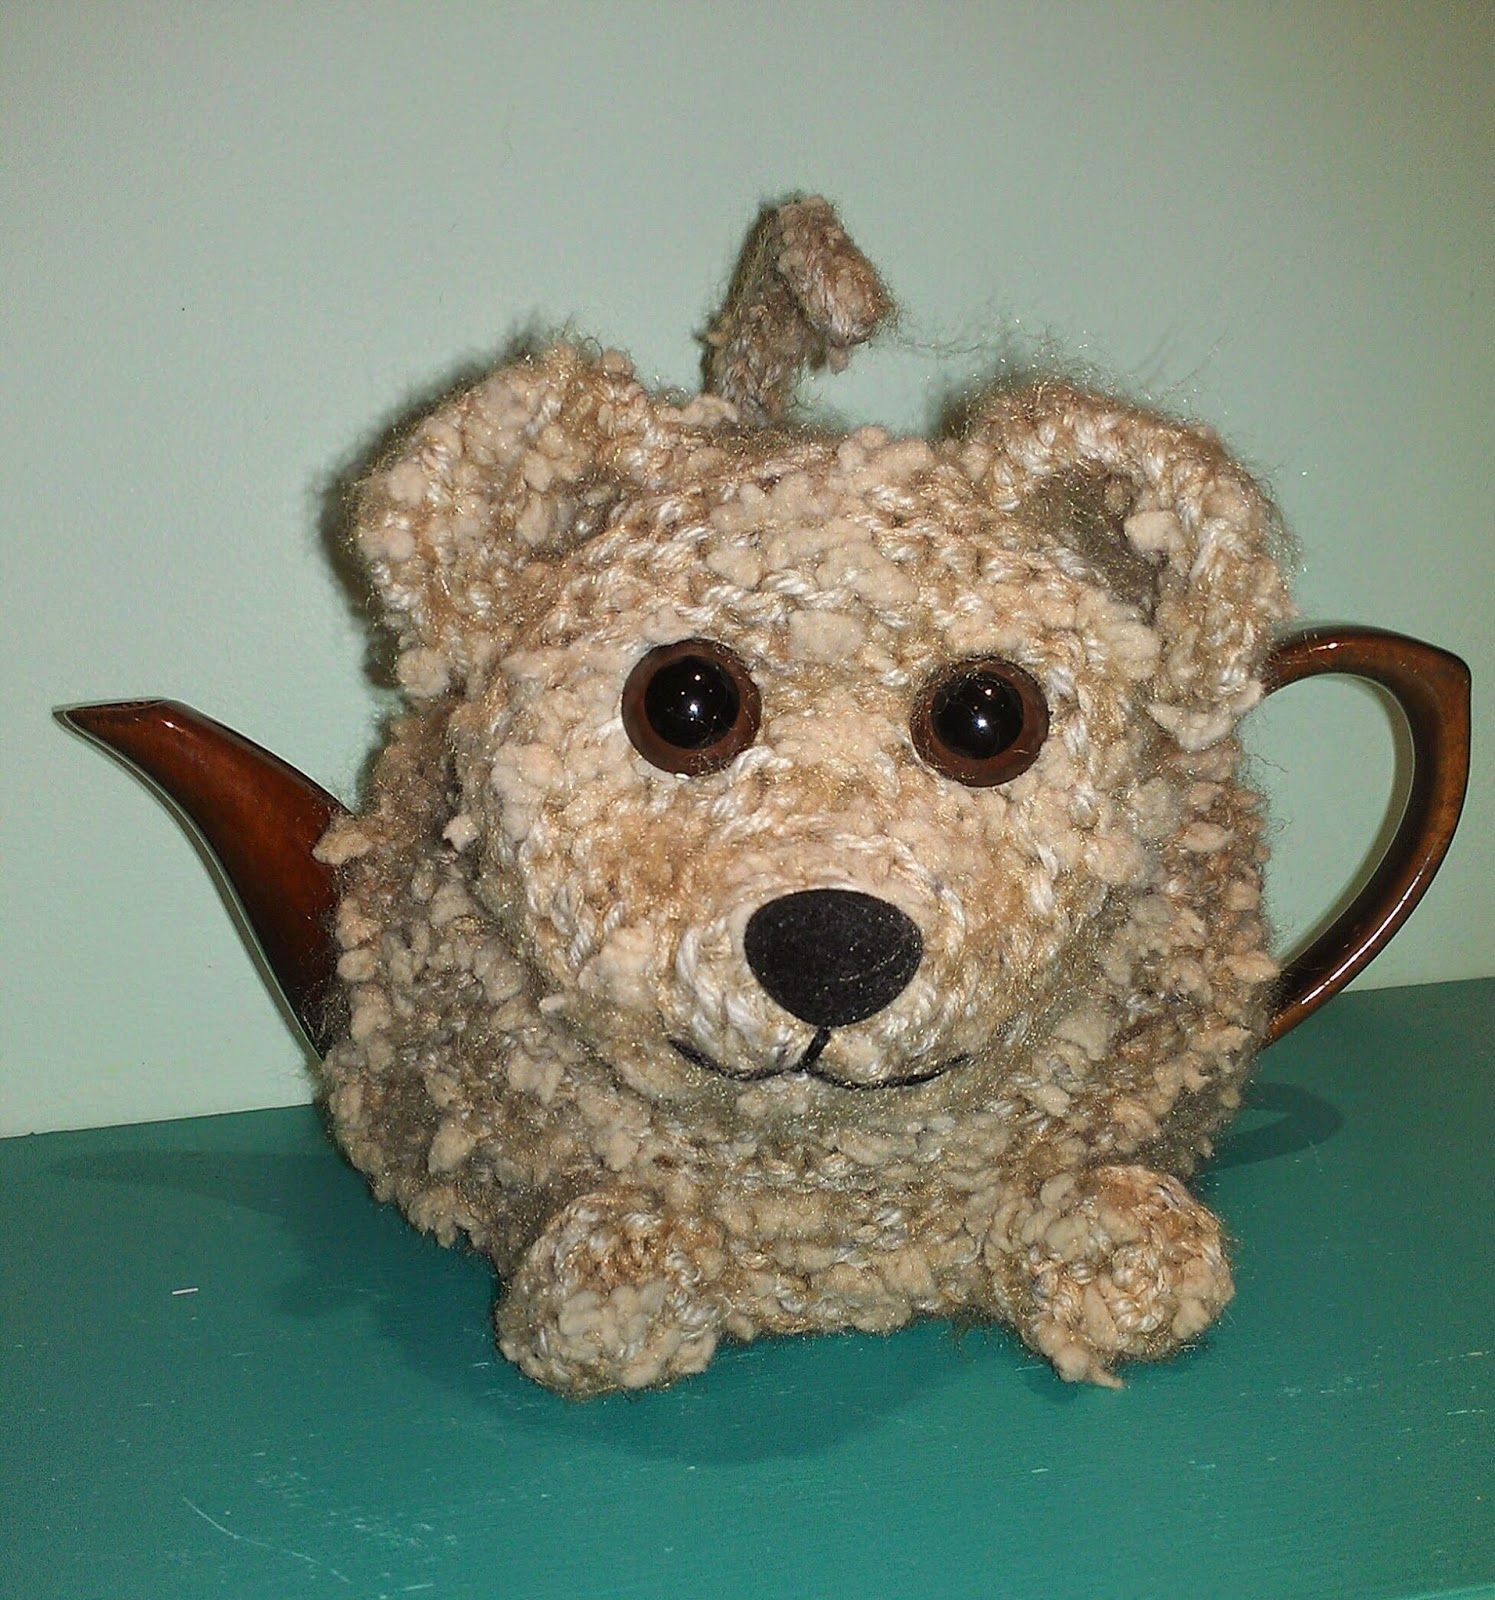 Knit buster the puppy tea cosy from the same pattern as for alfie craft a cure for cancer free tea cosy patterns animal tea cosies bankloansurffo Images